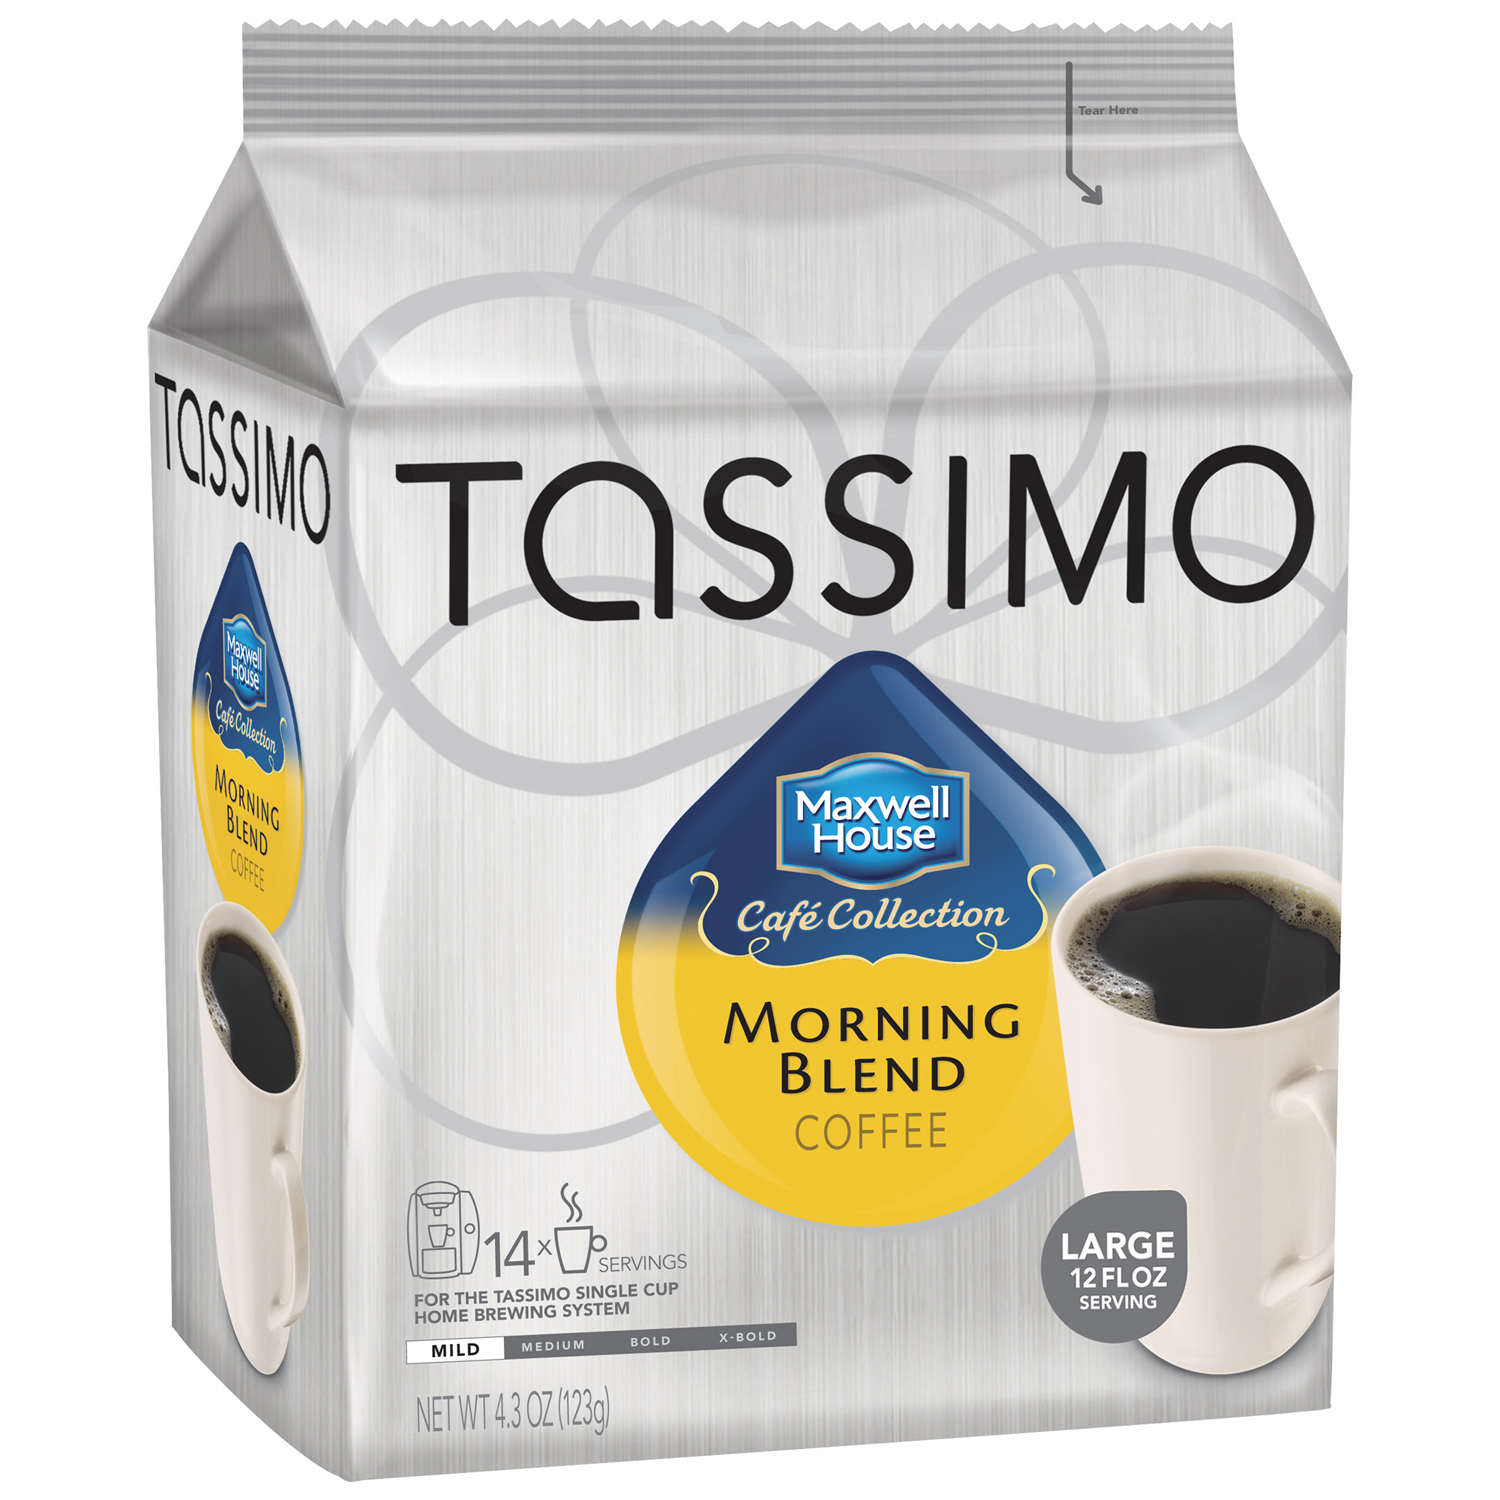 Tassimo Maxwell House Café Collection Morning Blend Coffee T Discs 14 ct Bag